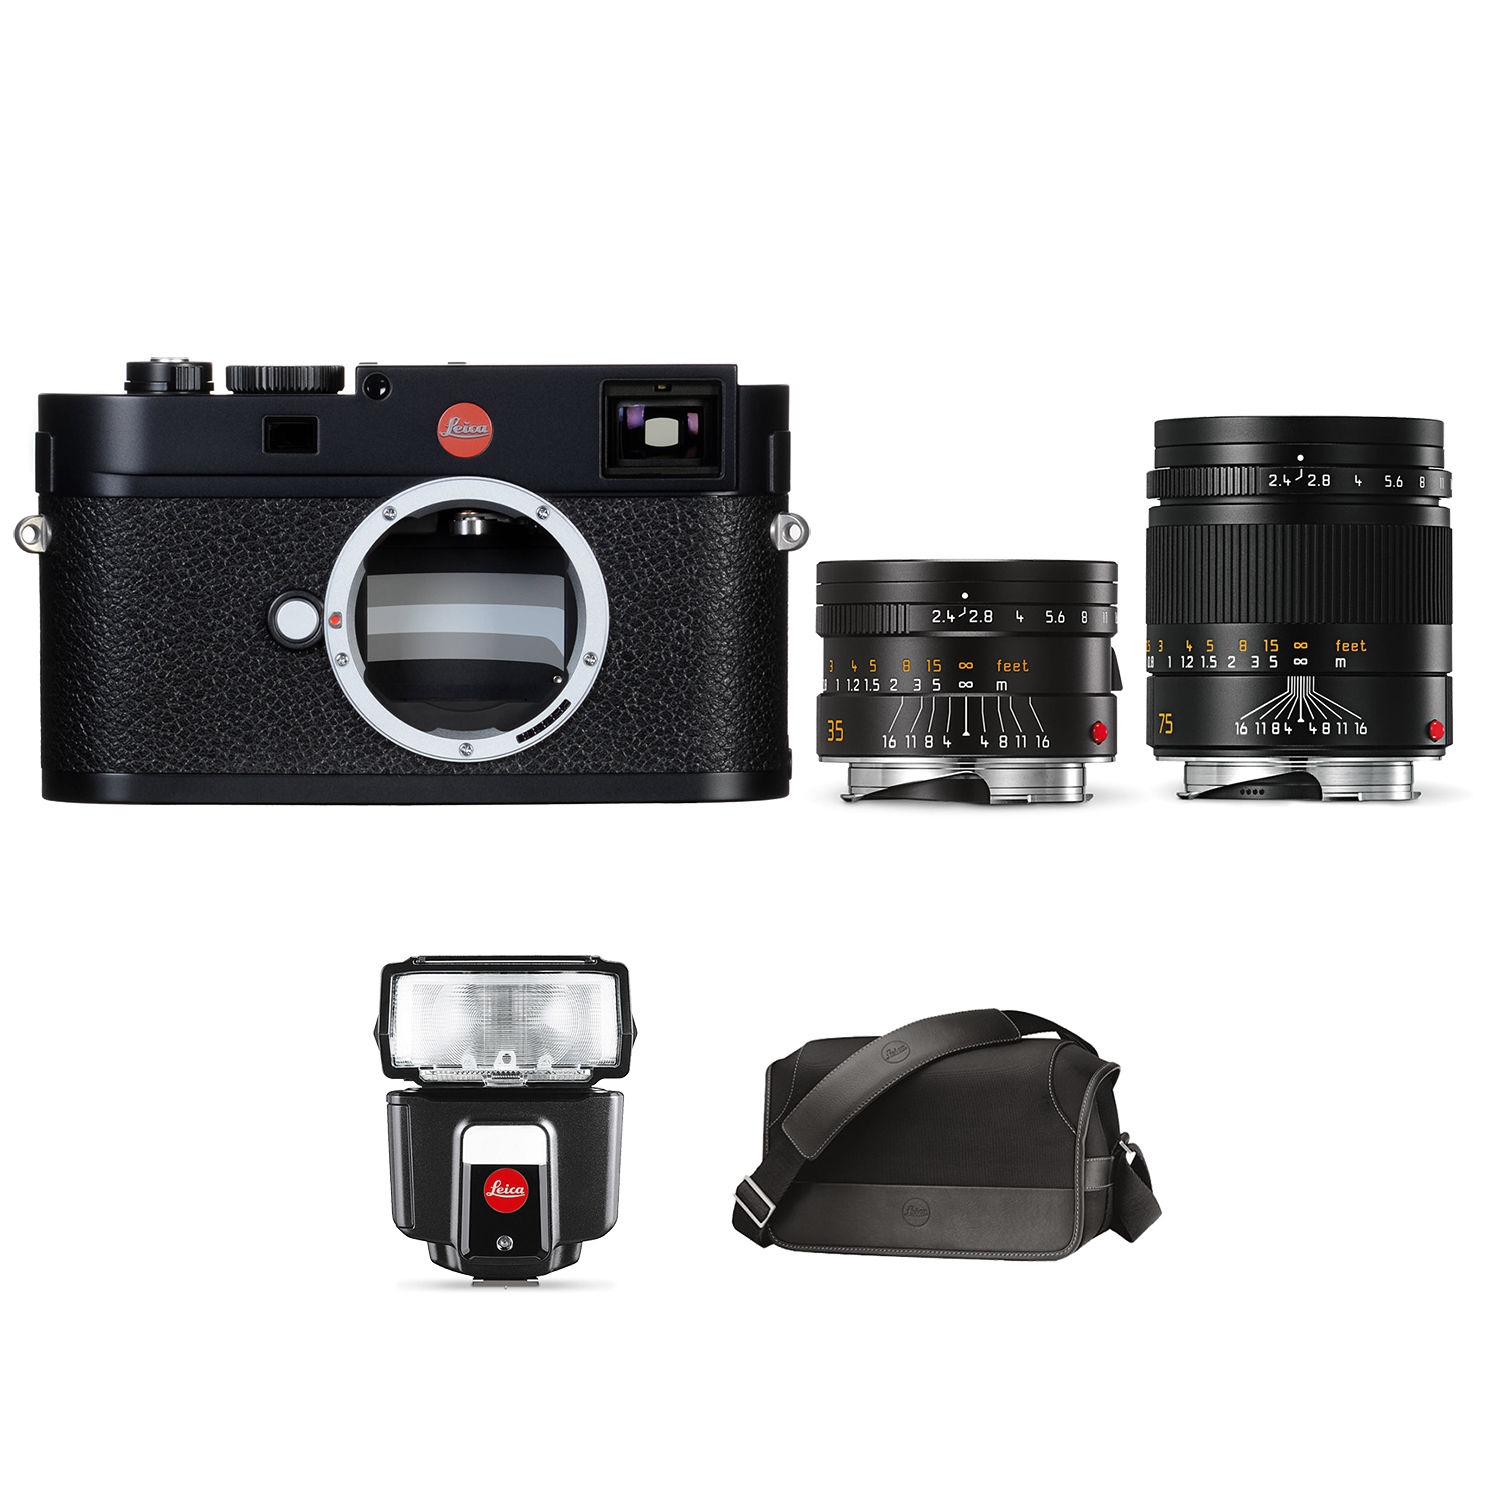 Leica M (Typ 262) Camera Driver for Windows